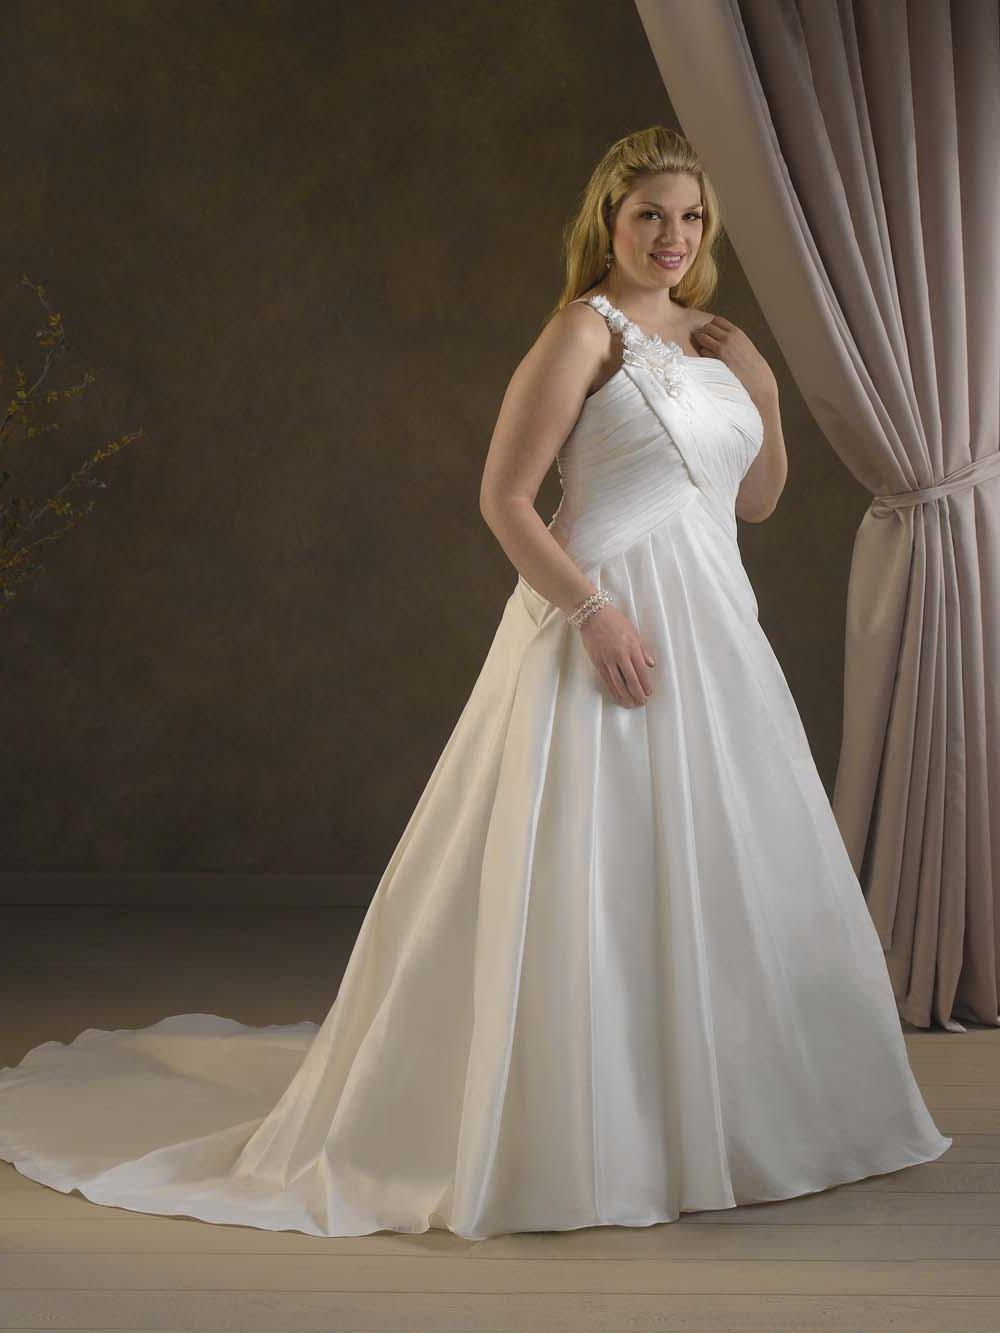 puffy wedding dresses 2011